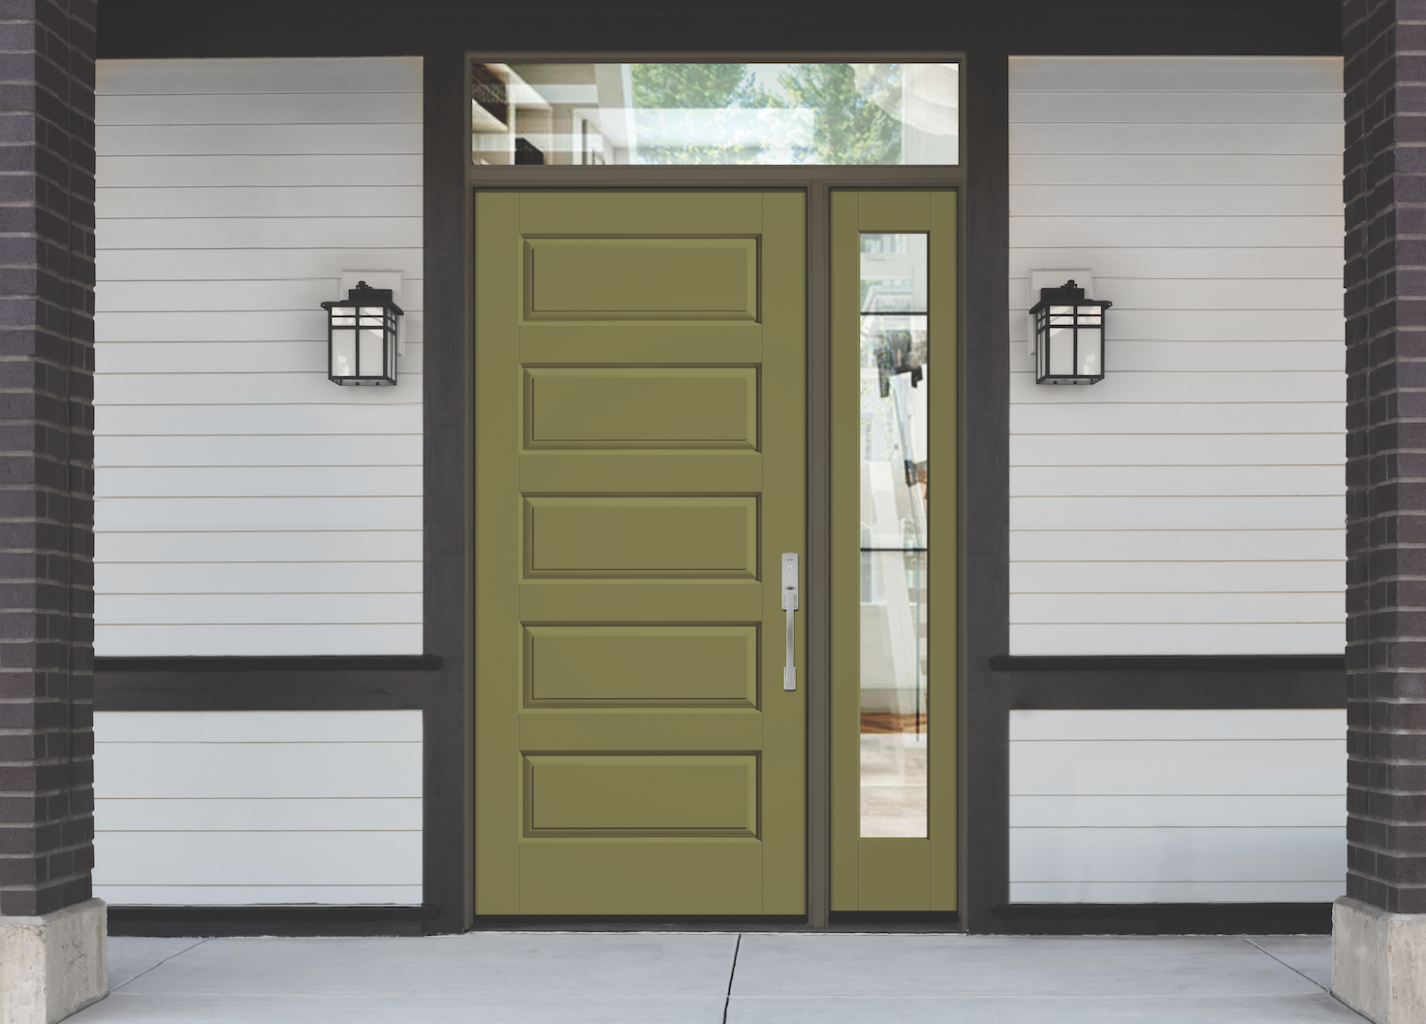 Classic Craft Canvas Collection Entry Door U2013 CCV050; Low E Glass, Sidelite  U2013 CCV100SL, Transom U2013 19220T. Therma Tru Fiberglass Entry Doors